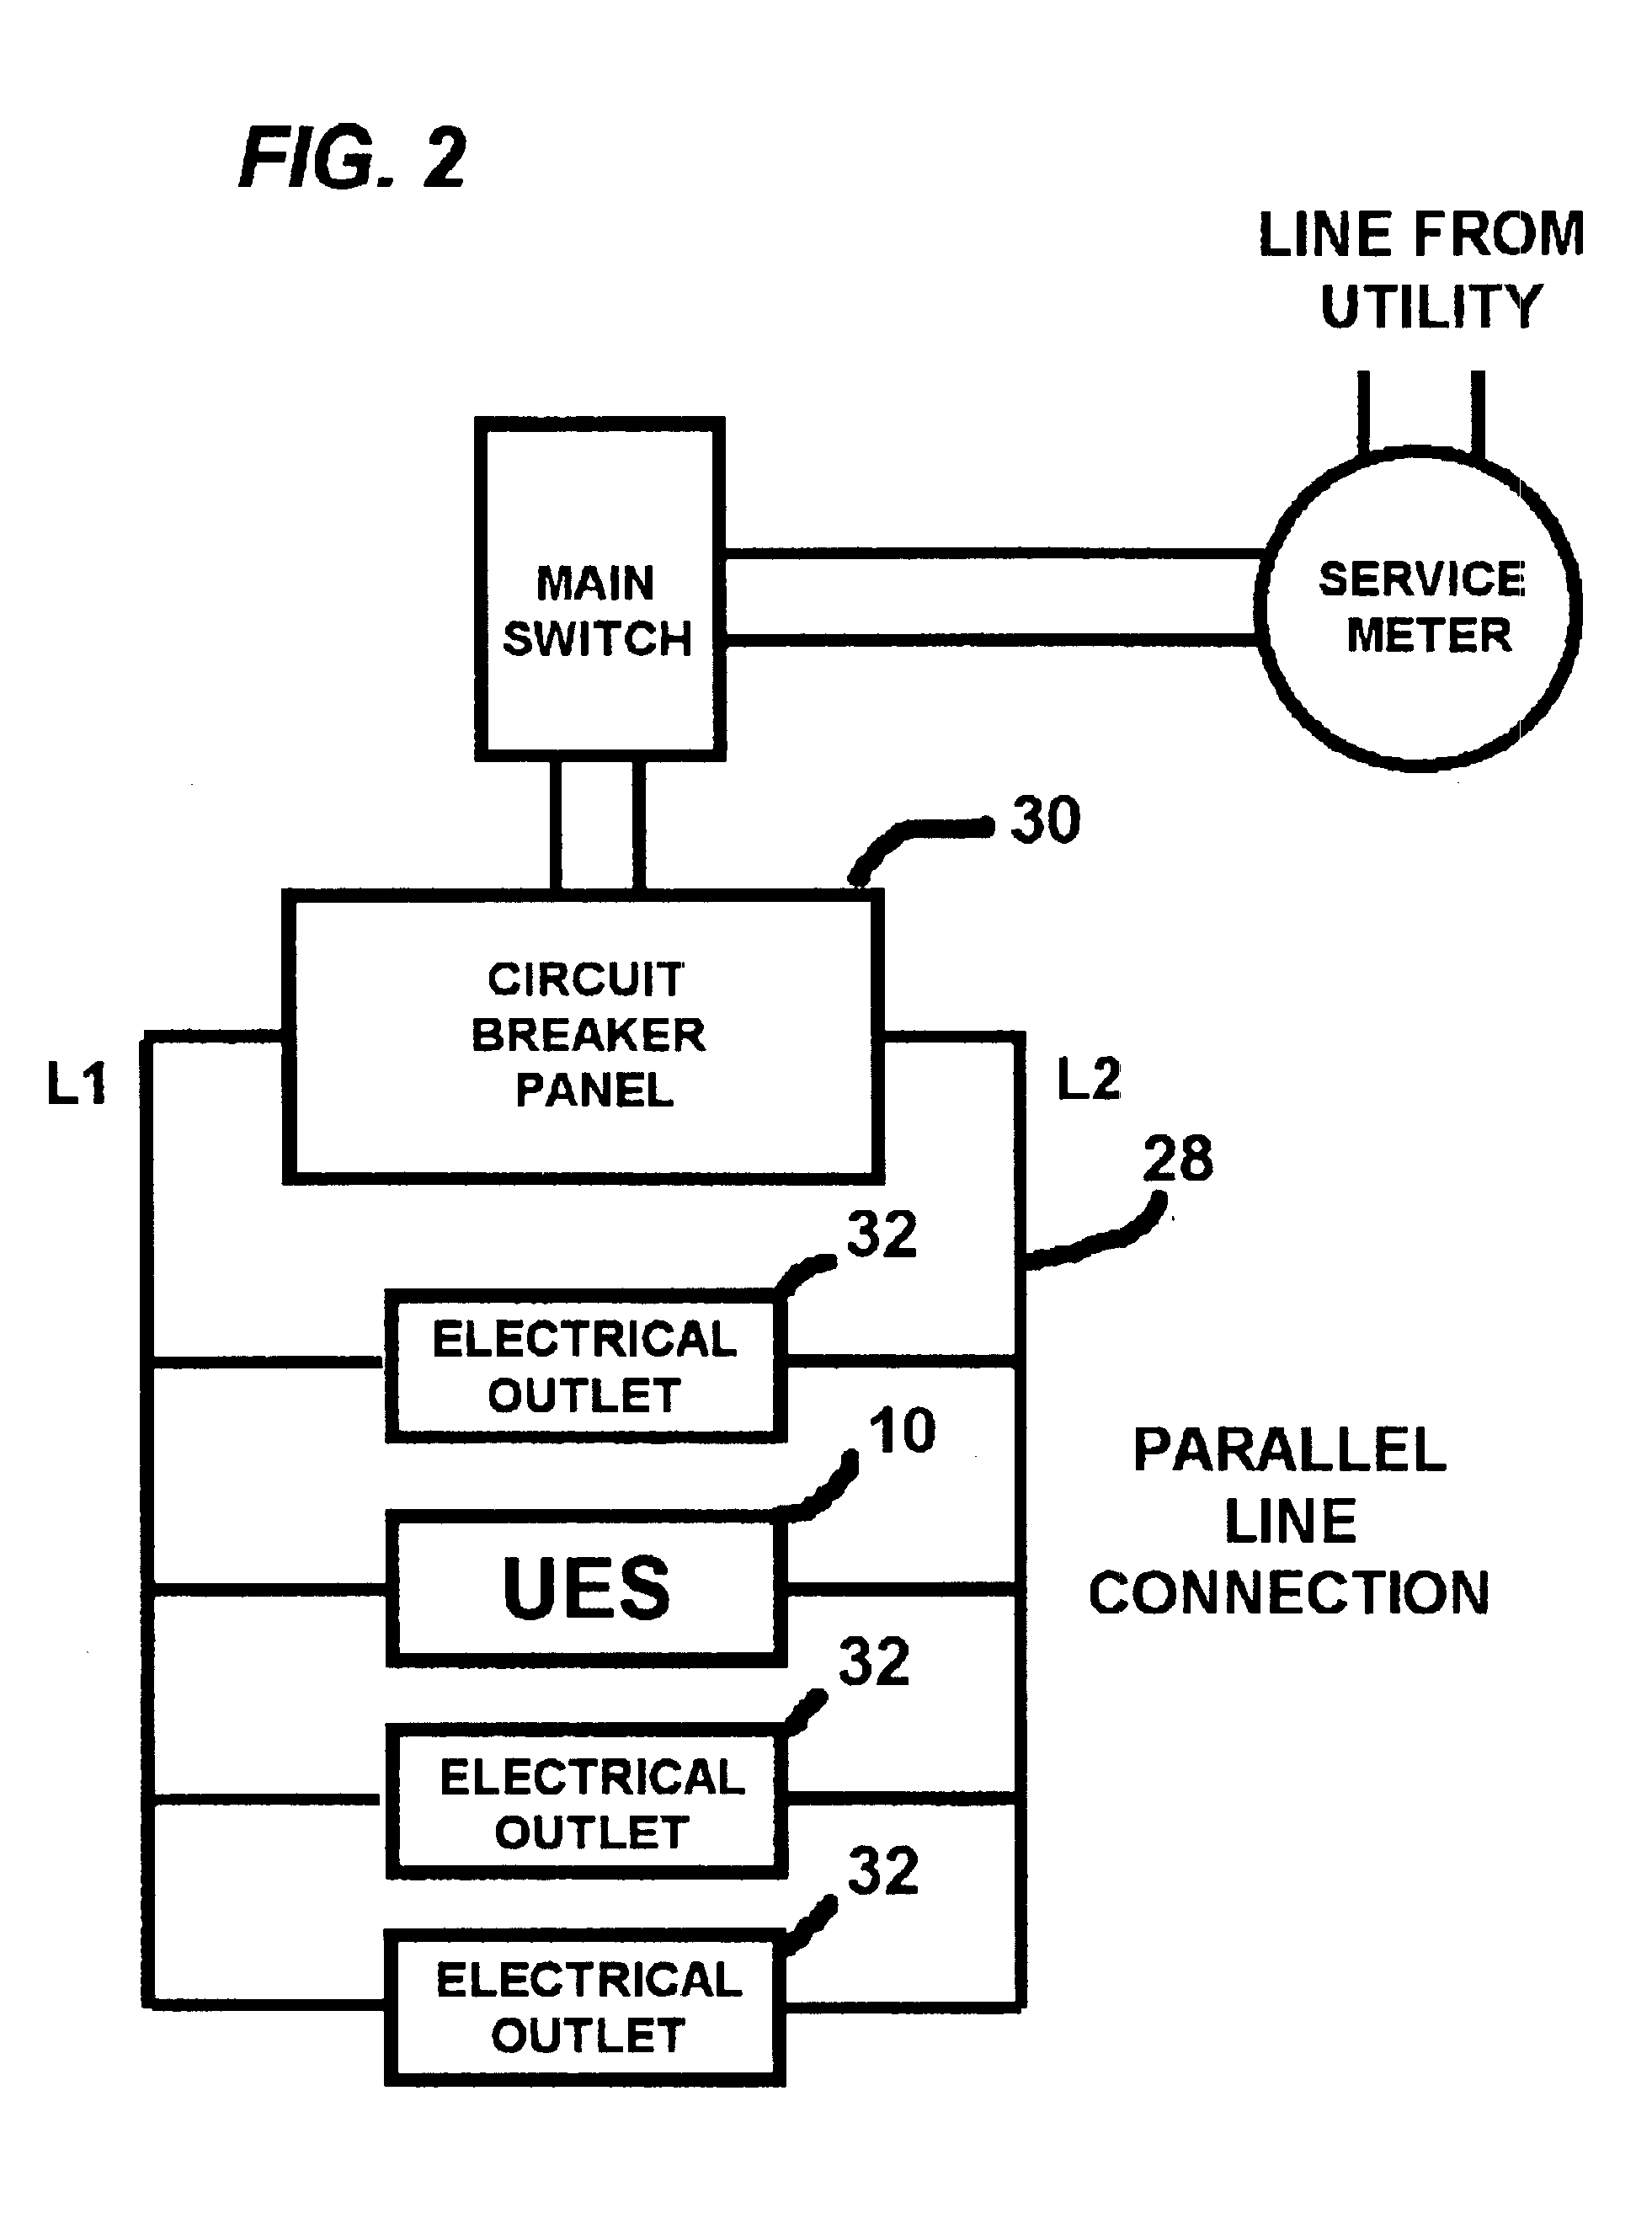 Electrical Energy Drawing At Free For Personal Use Power Saver Circuit Diagram 1962x2641 Patent Us6801022 Universal Google Patents